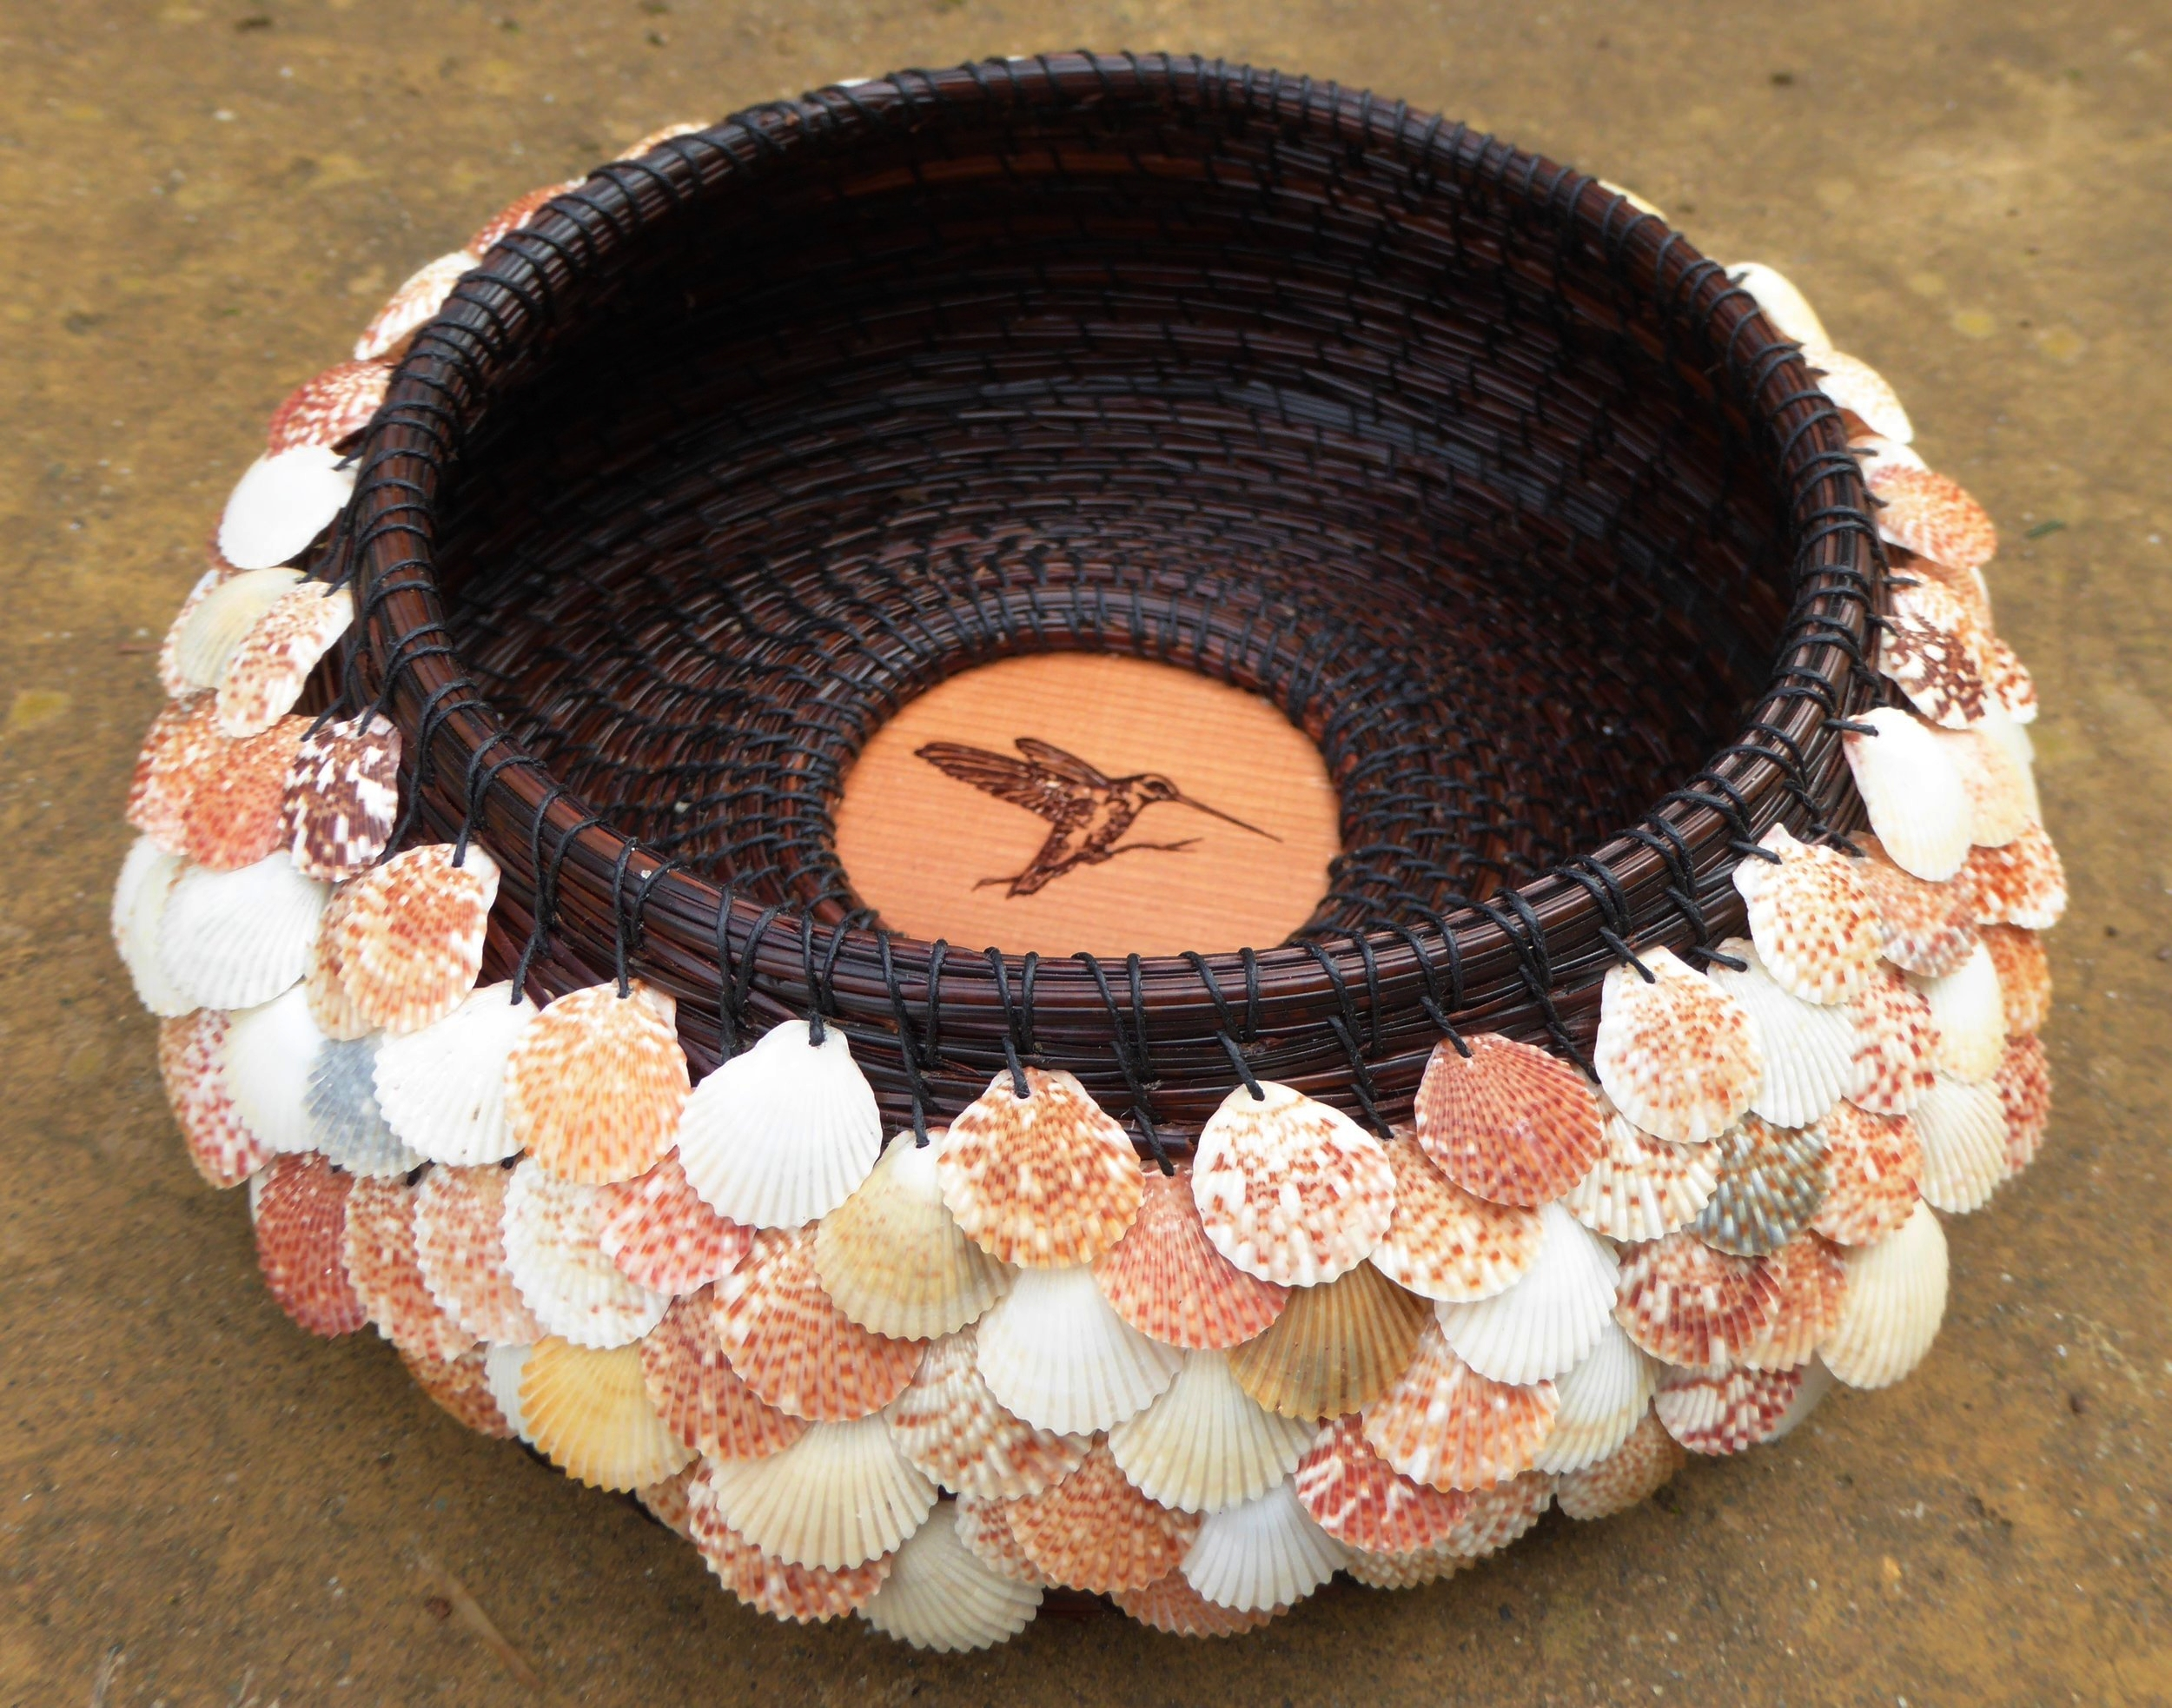 Hummingbird Basket